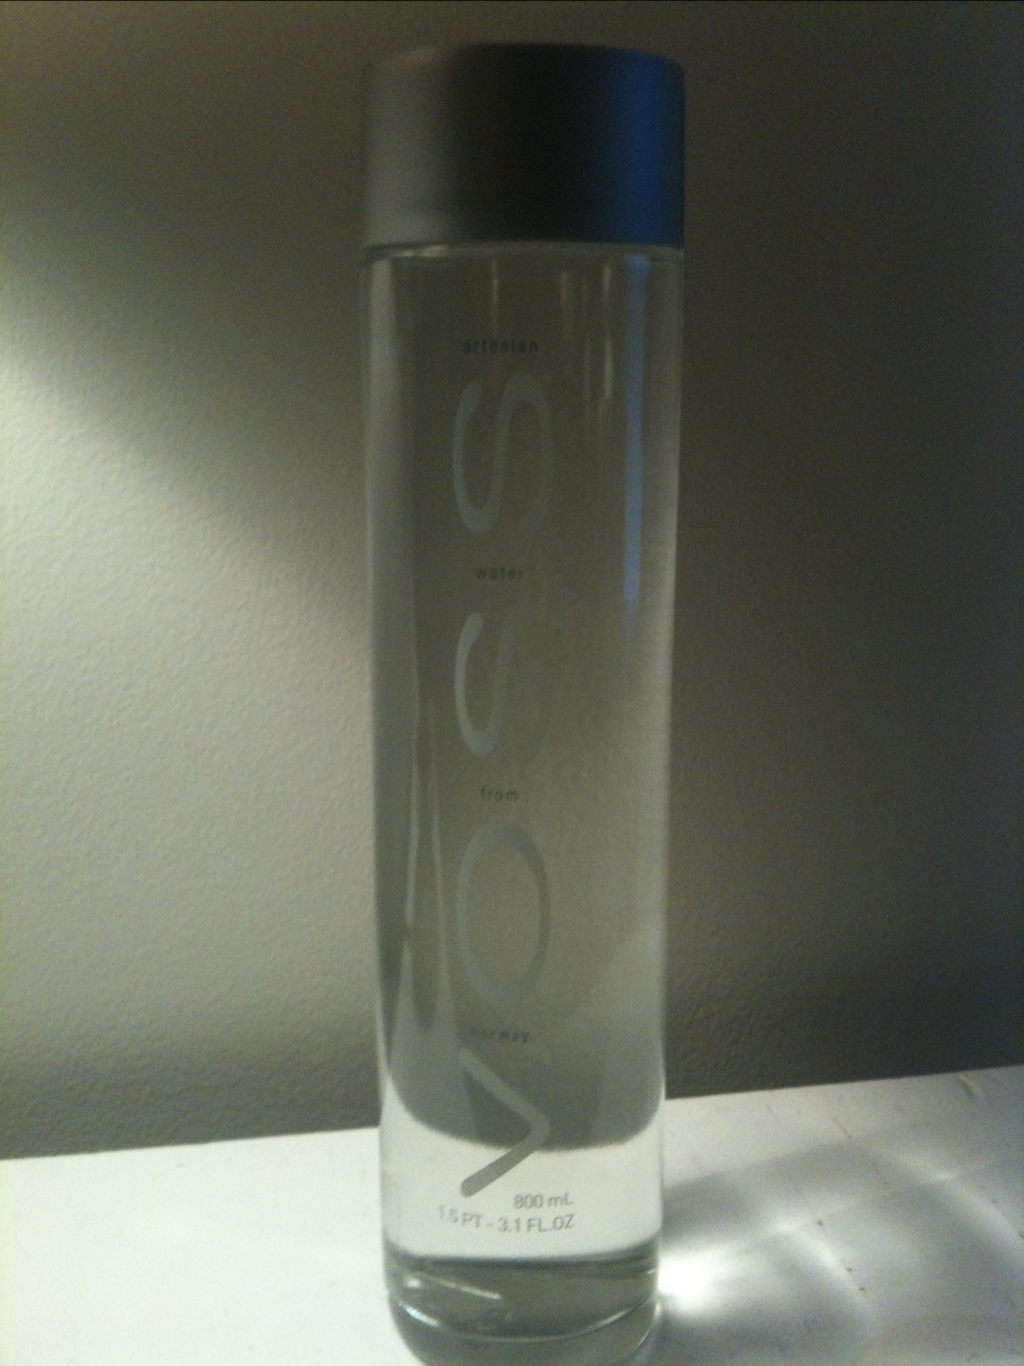 5 Lessons in Personal Branding I Learned From my VOSS Water Bottle